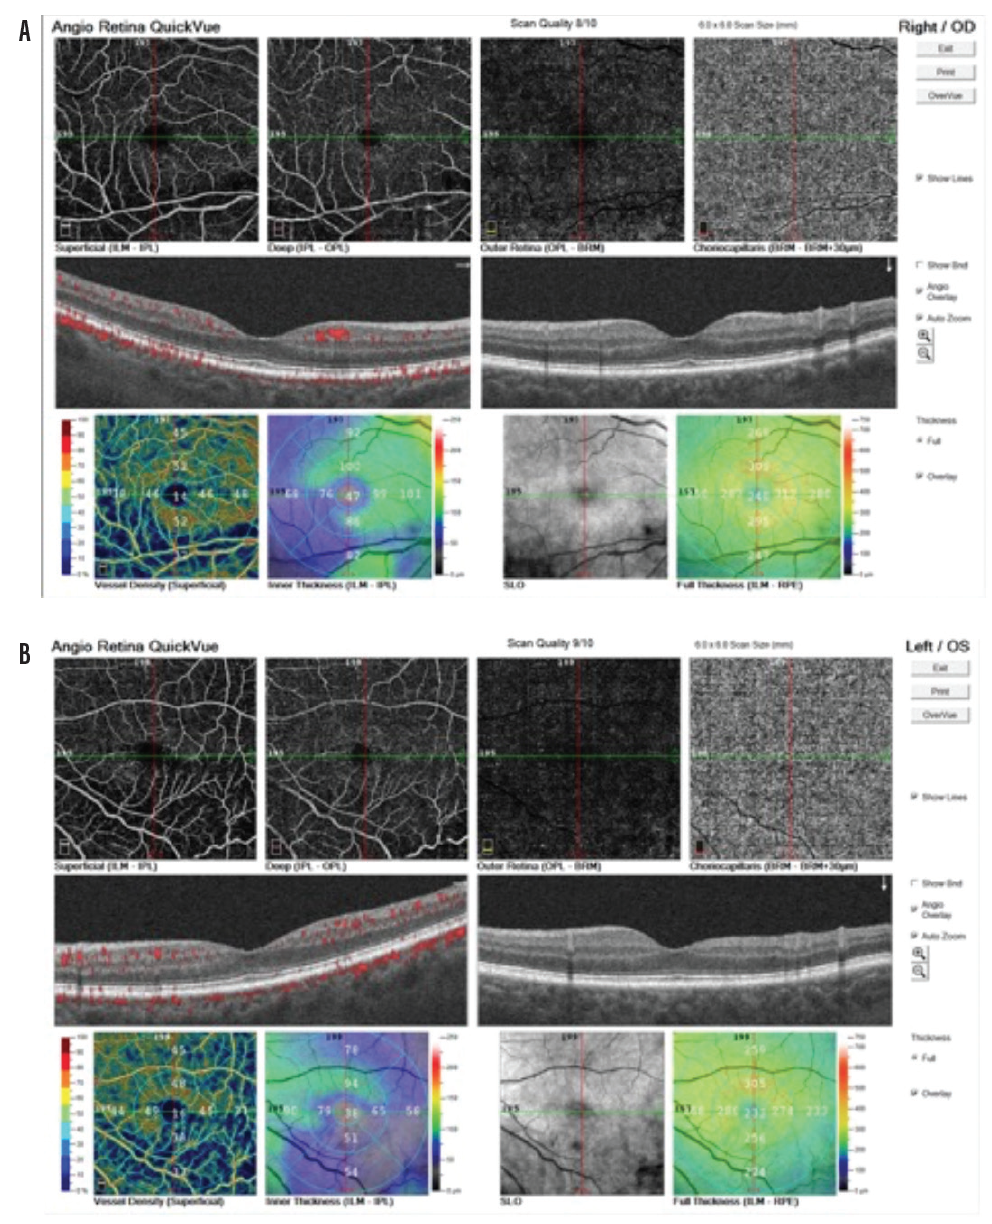 <p>Figure 7. In the right eye, the numbers are 92 µm superior perifovea/100 µm superior parafovea and 82 µm inferior perifovea/86 µm inferior parafovea on the inner retinal thickness map (A). In the left eye, the numbers are 78 µm superior perifovea/94 µm superior parafovea and 54 µm inferior perifovea/51 µm inferior parafovea on the inner retinal thickness map (B).</p>